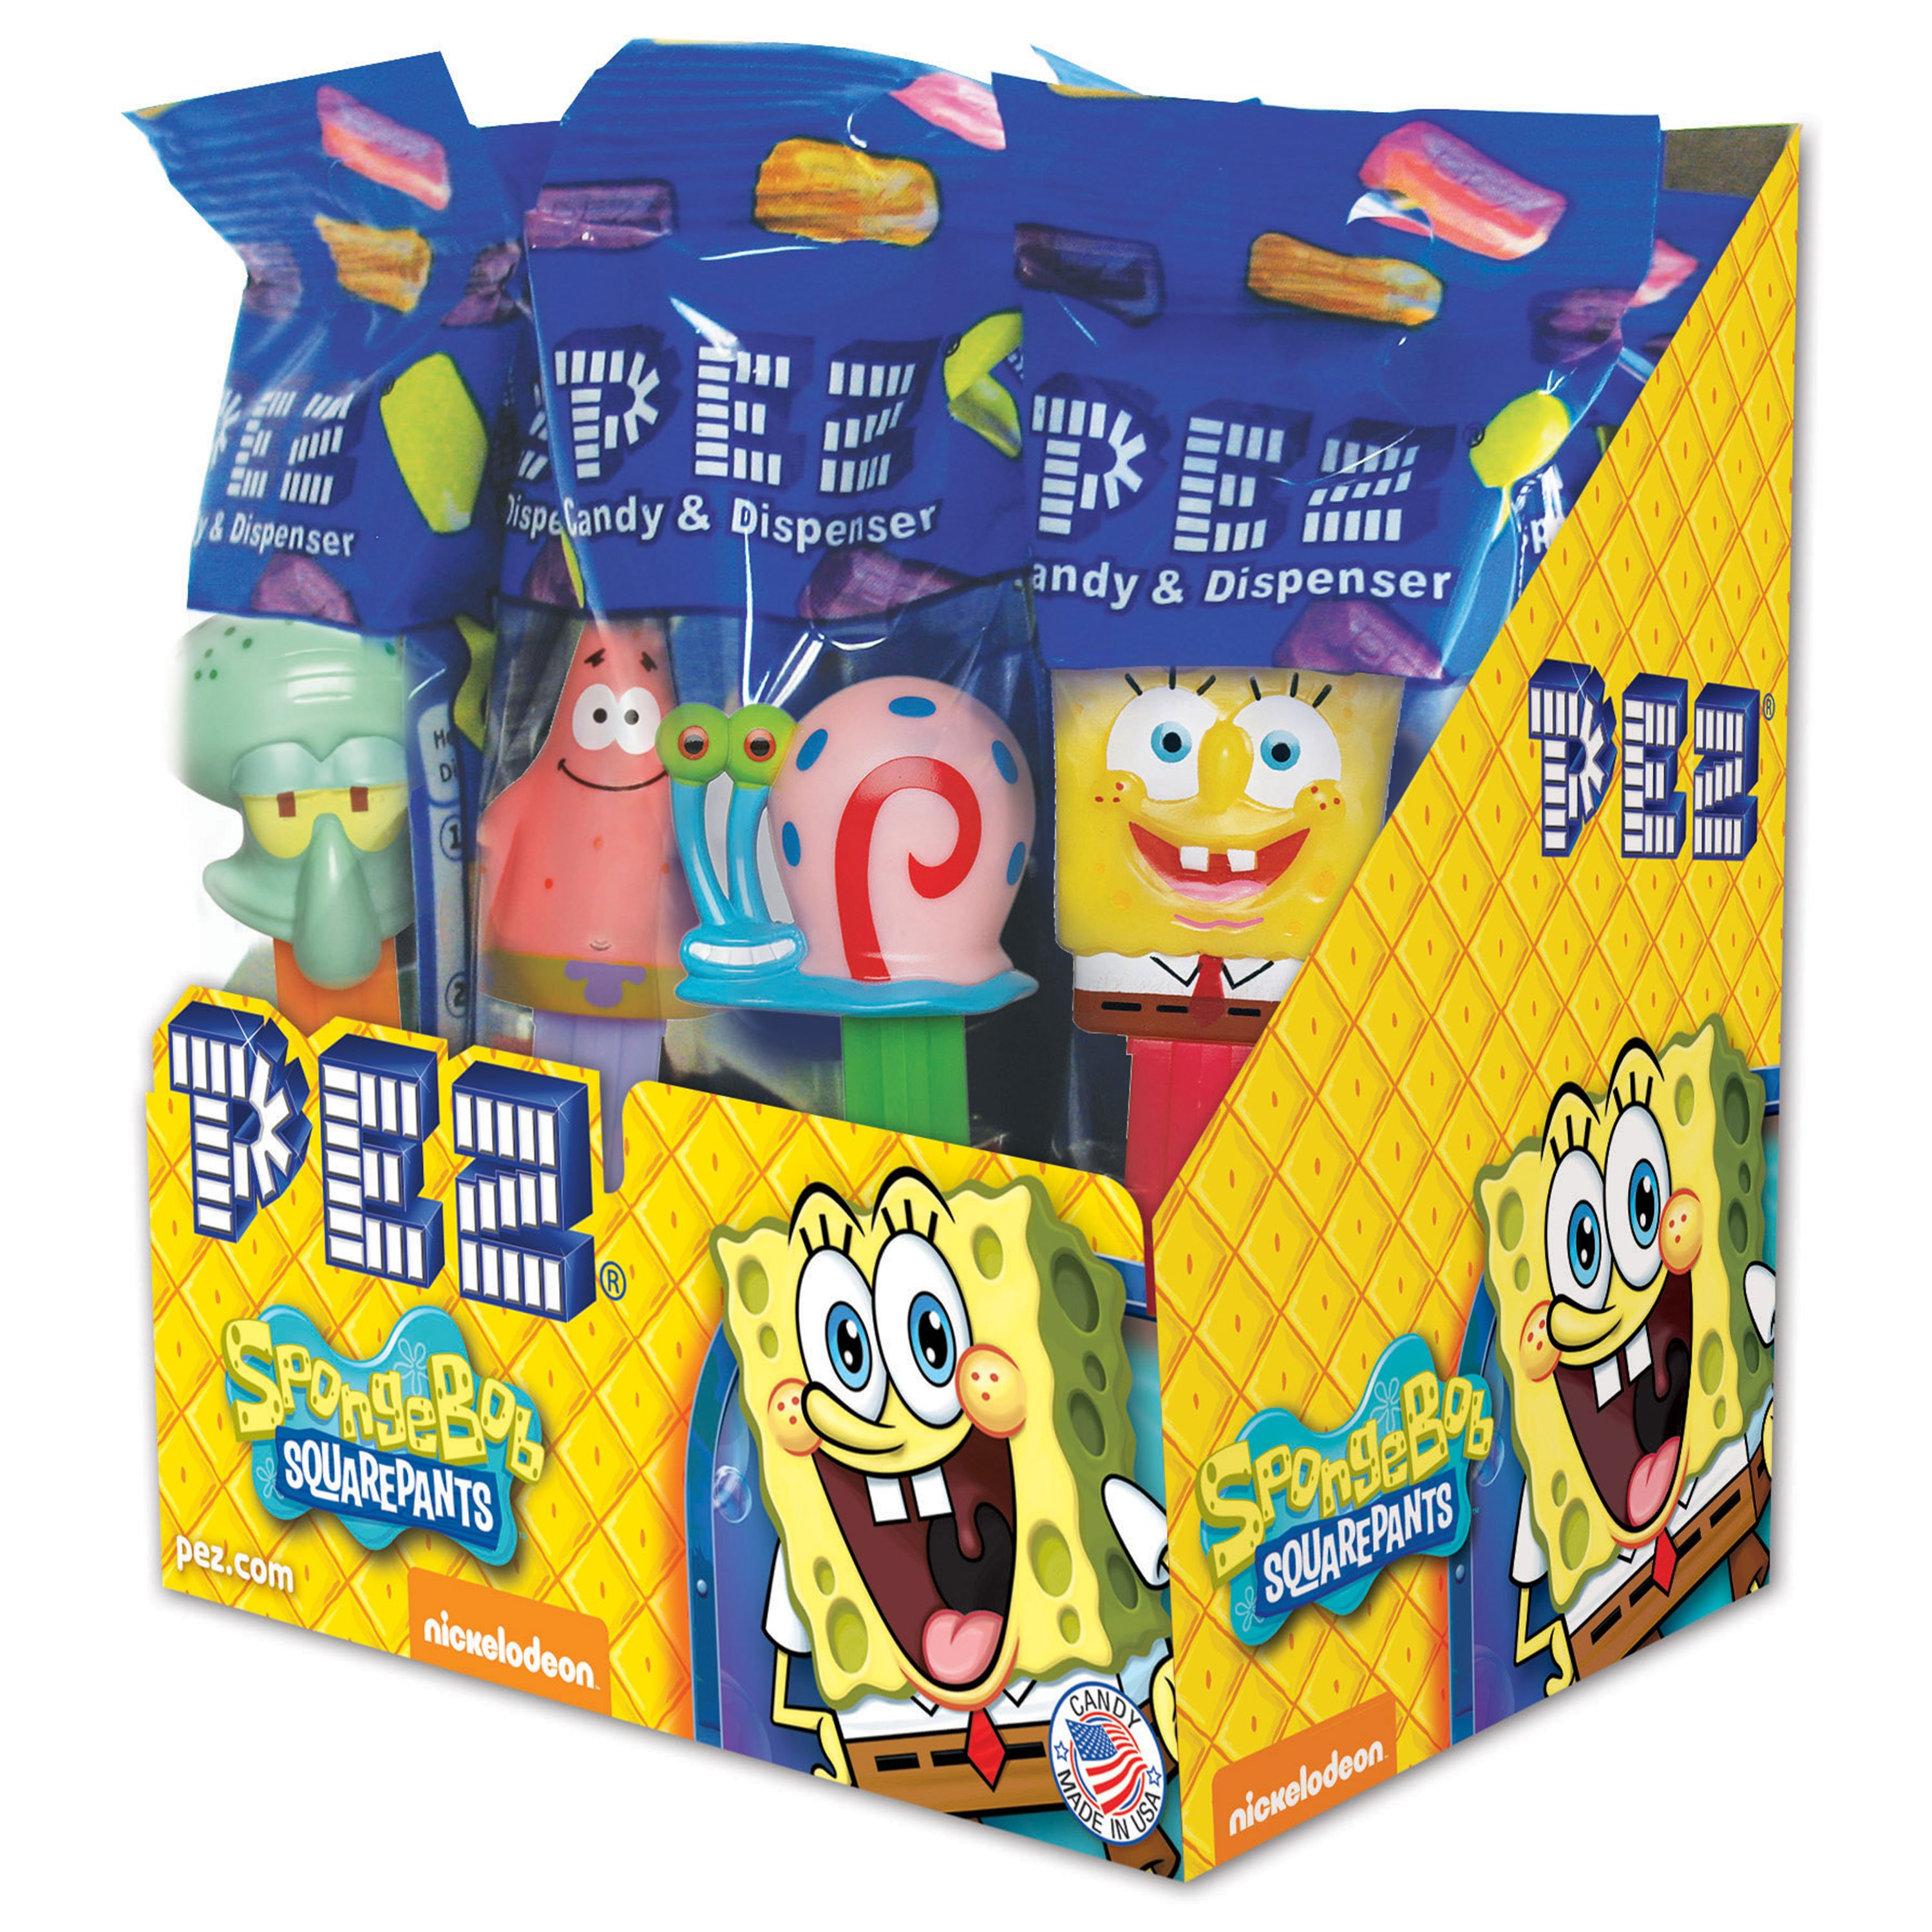 PEZ Candy SpongeBob Assortment, candy dispenser plus 2 rolls of assorted fruit candy, box of 12